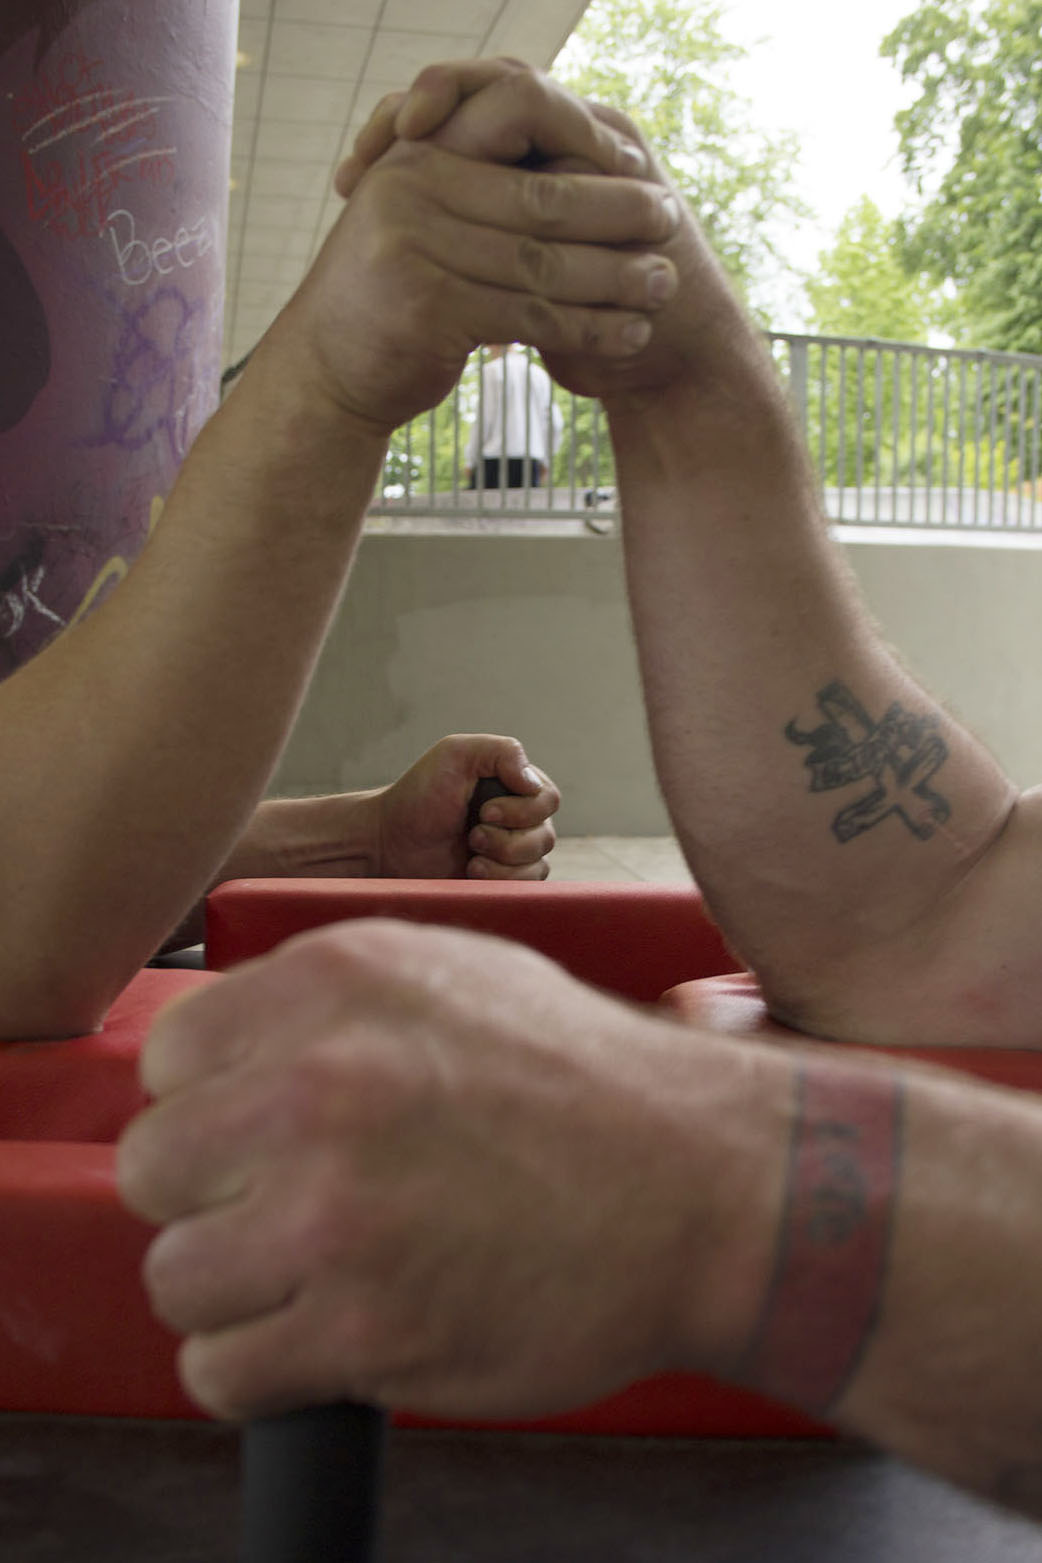 Hand positioning is an important part of armwrestling.  Though there are three basic moves: top-roll, hook, and press, competitors use various combinations and hybrids, often switching between moves in a single match.